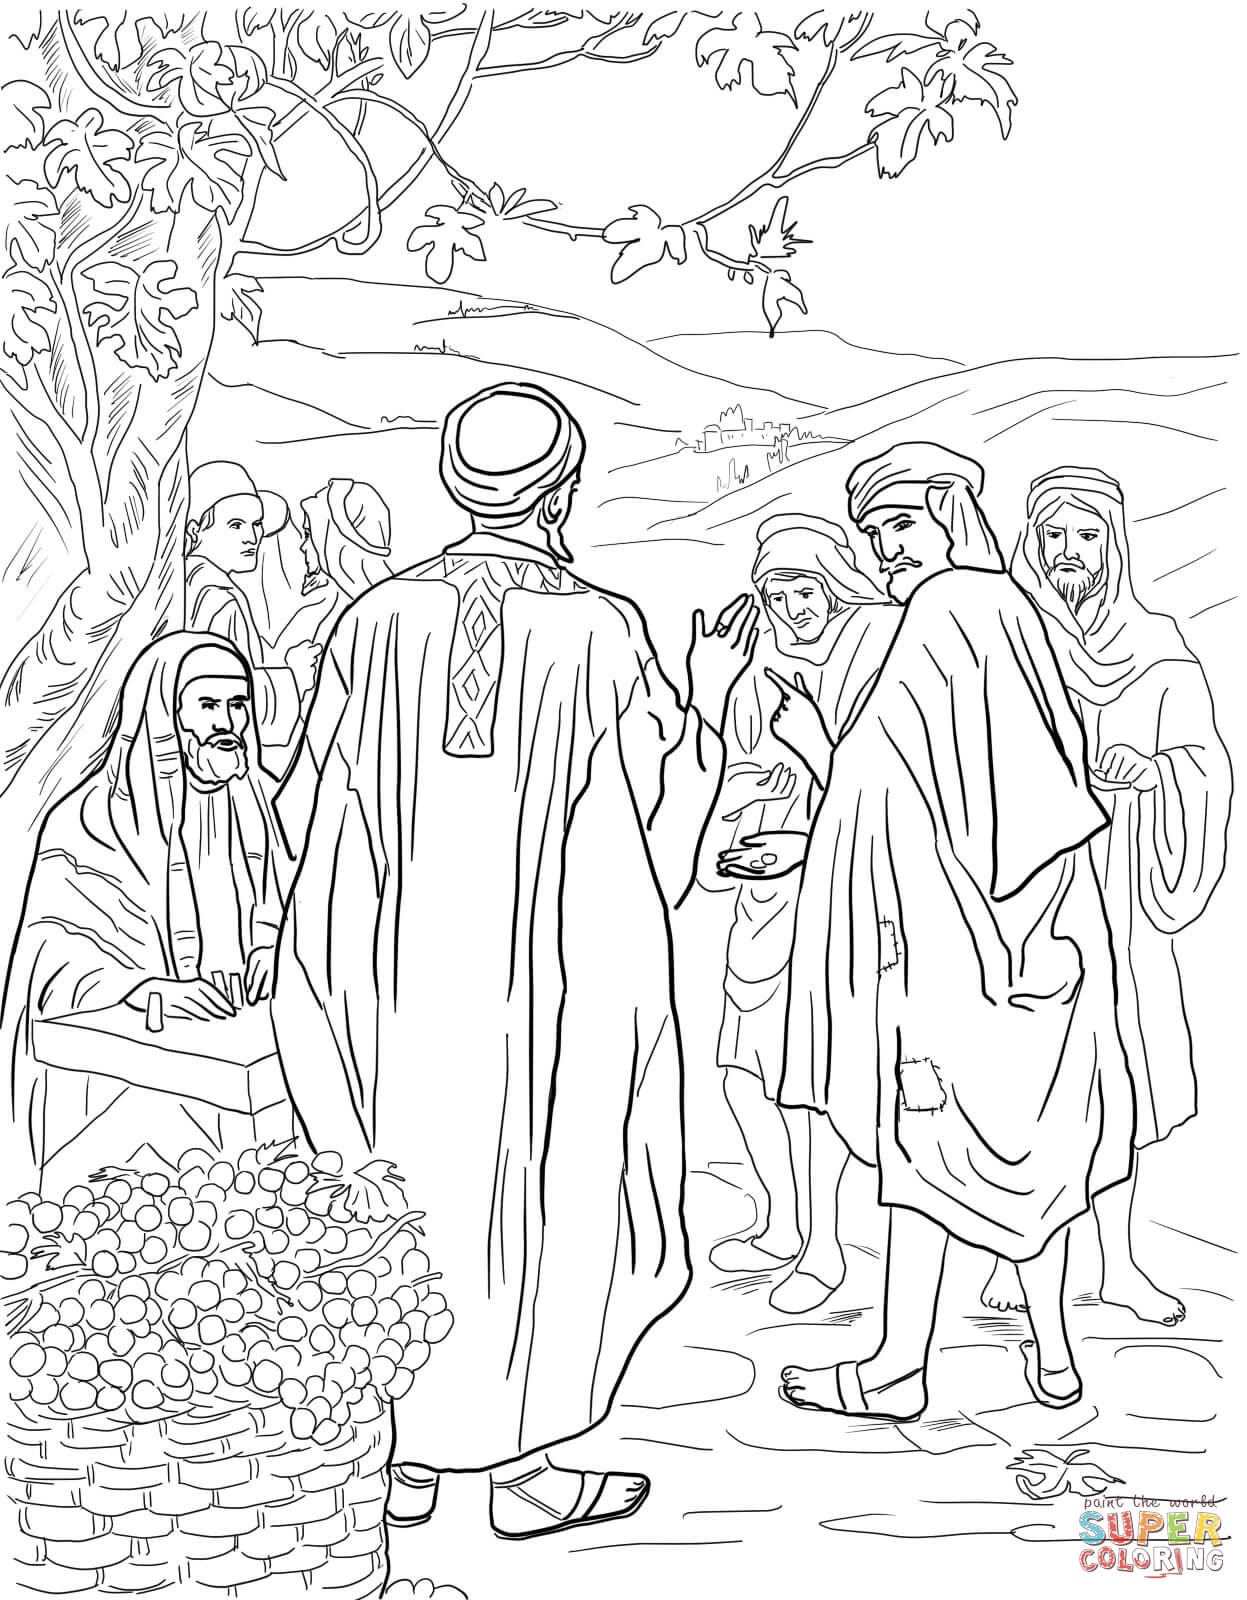 Parable of the Workers in the Vineyard coloring page